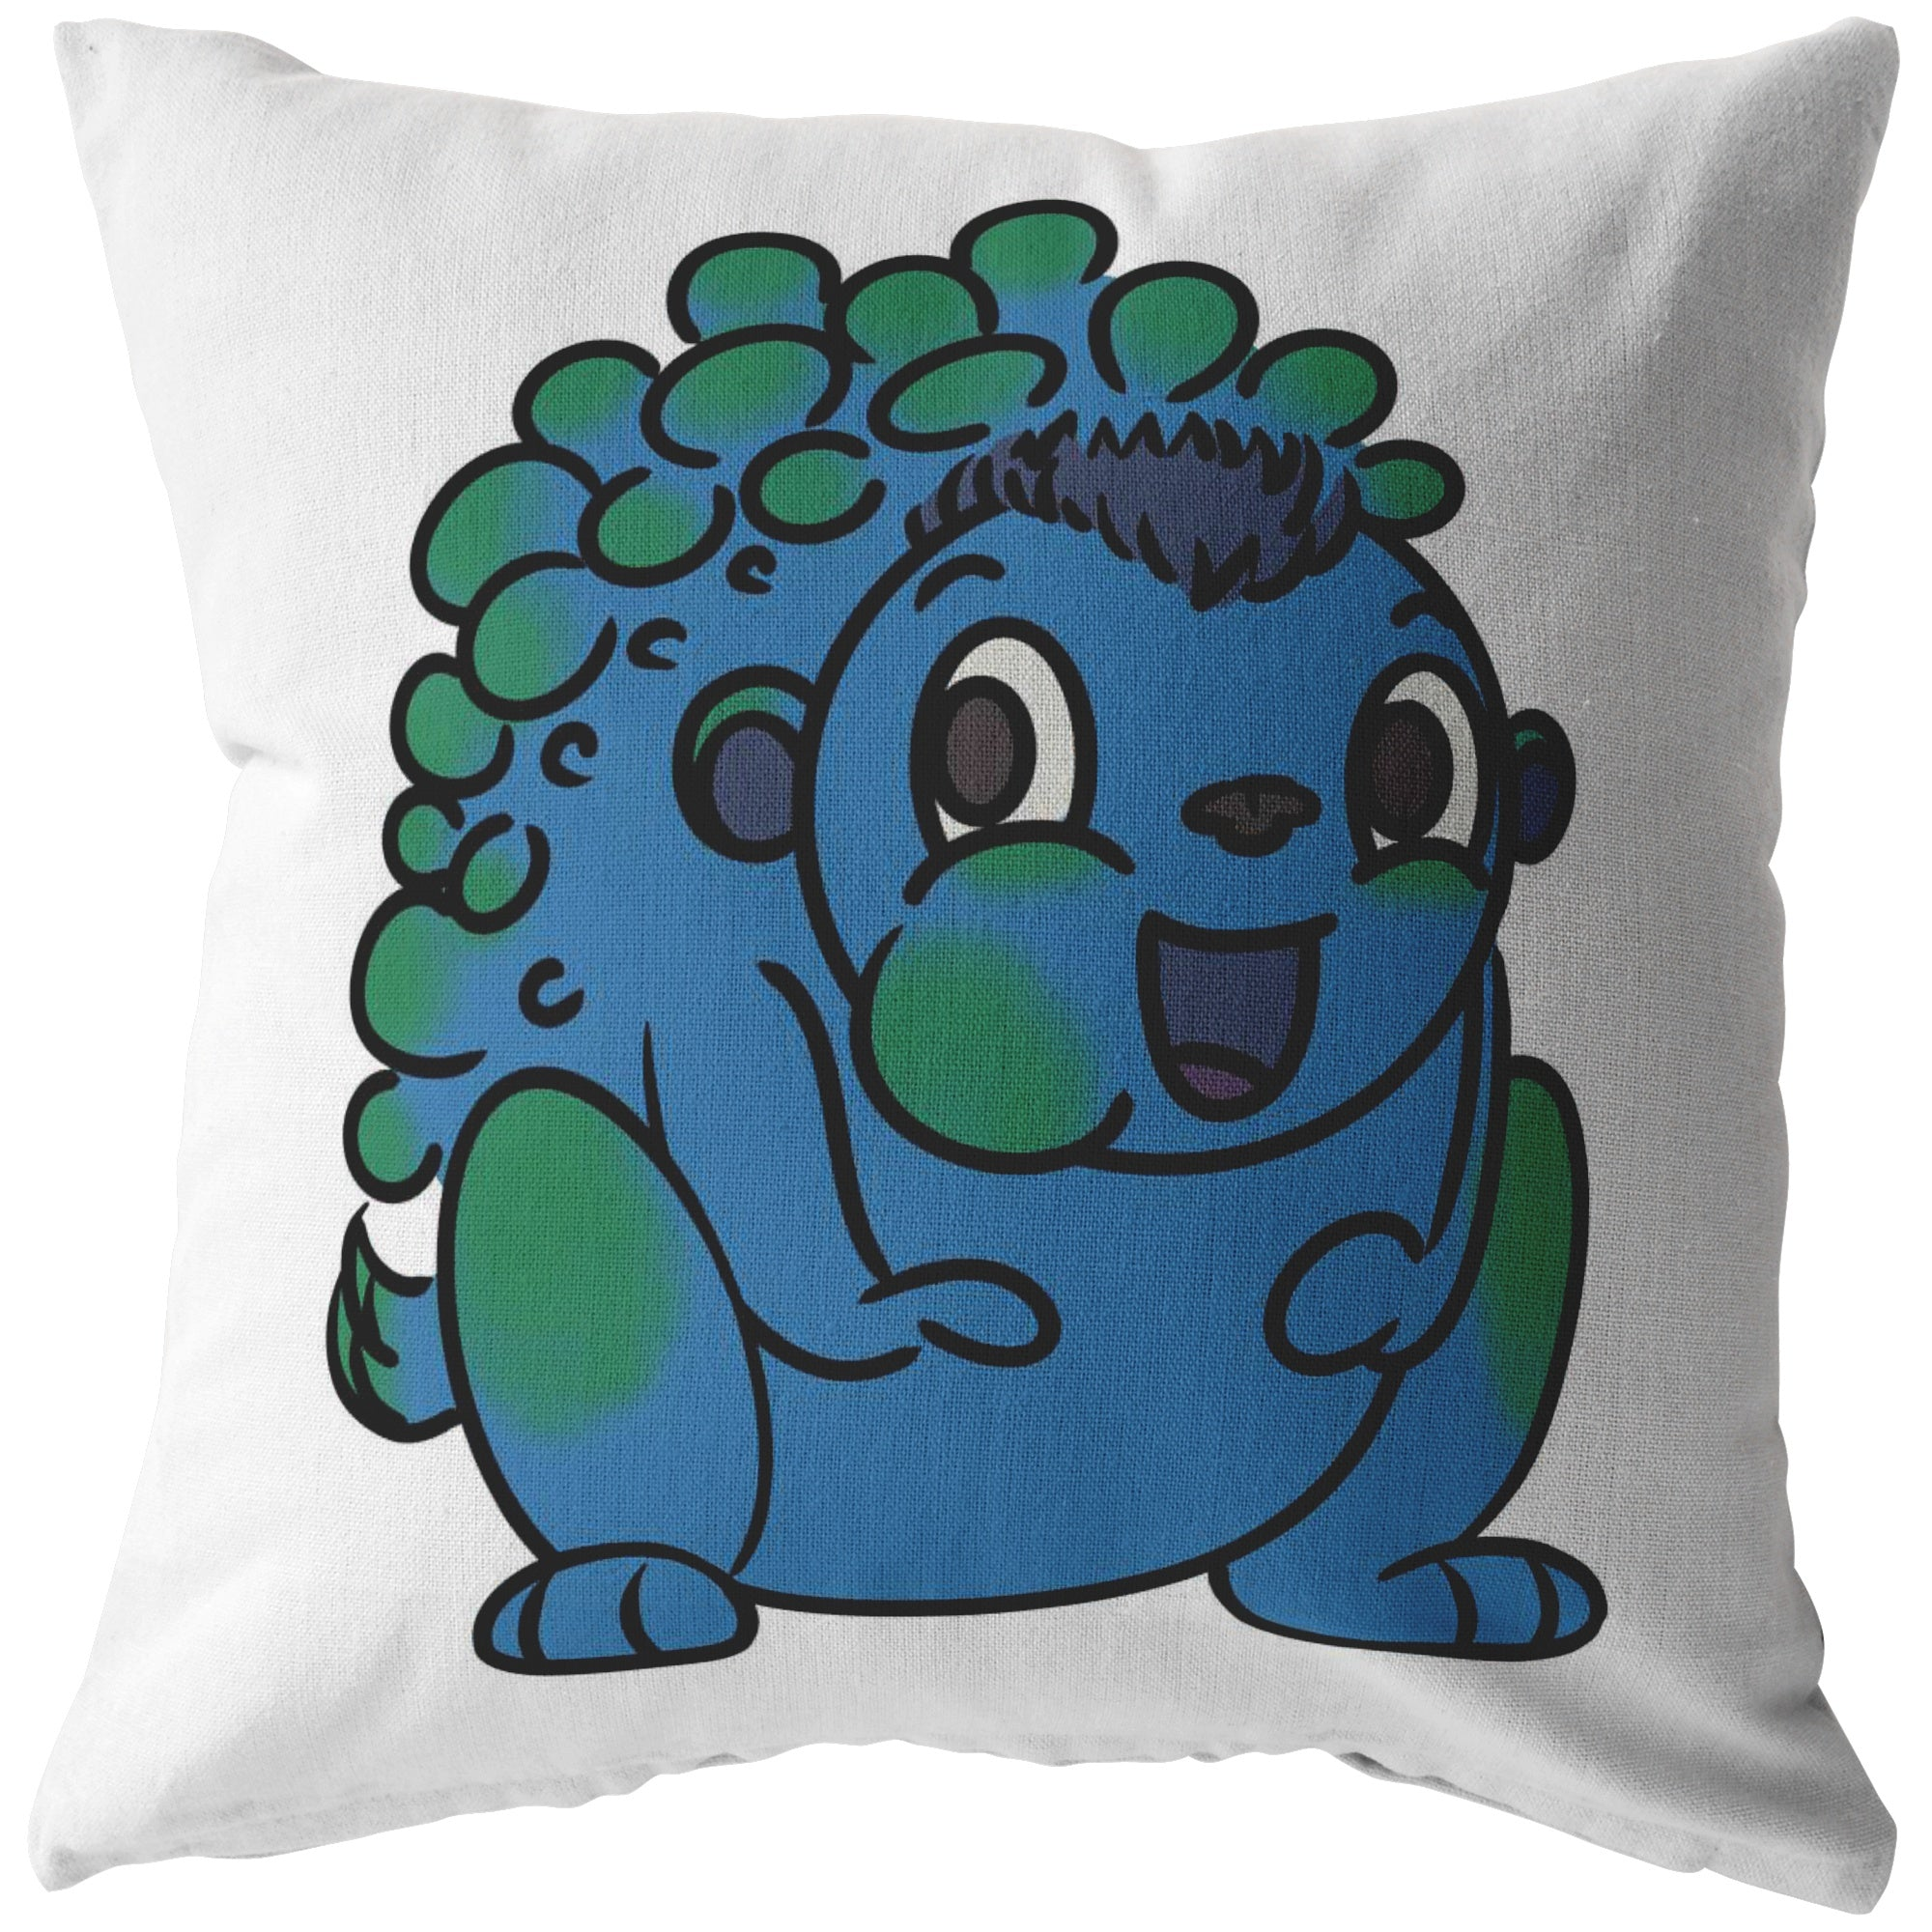 Ned the Neurofibromatosis Monster Pillow